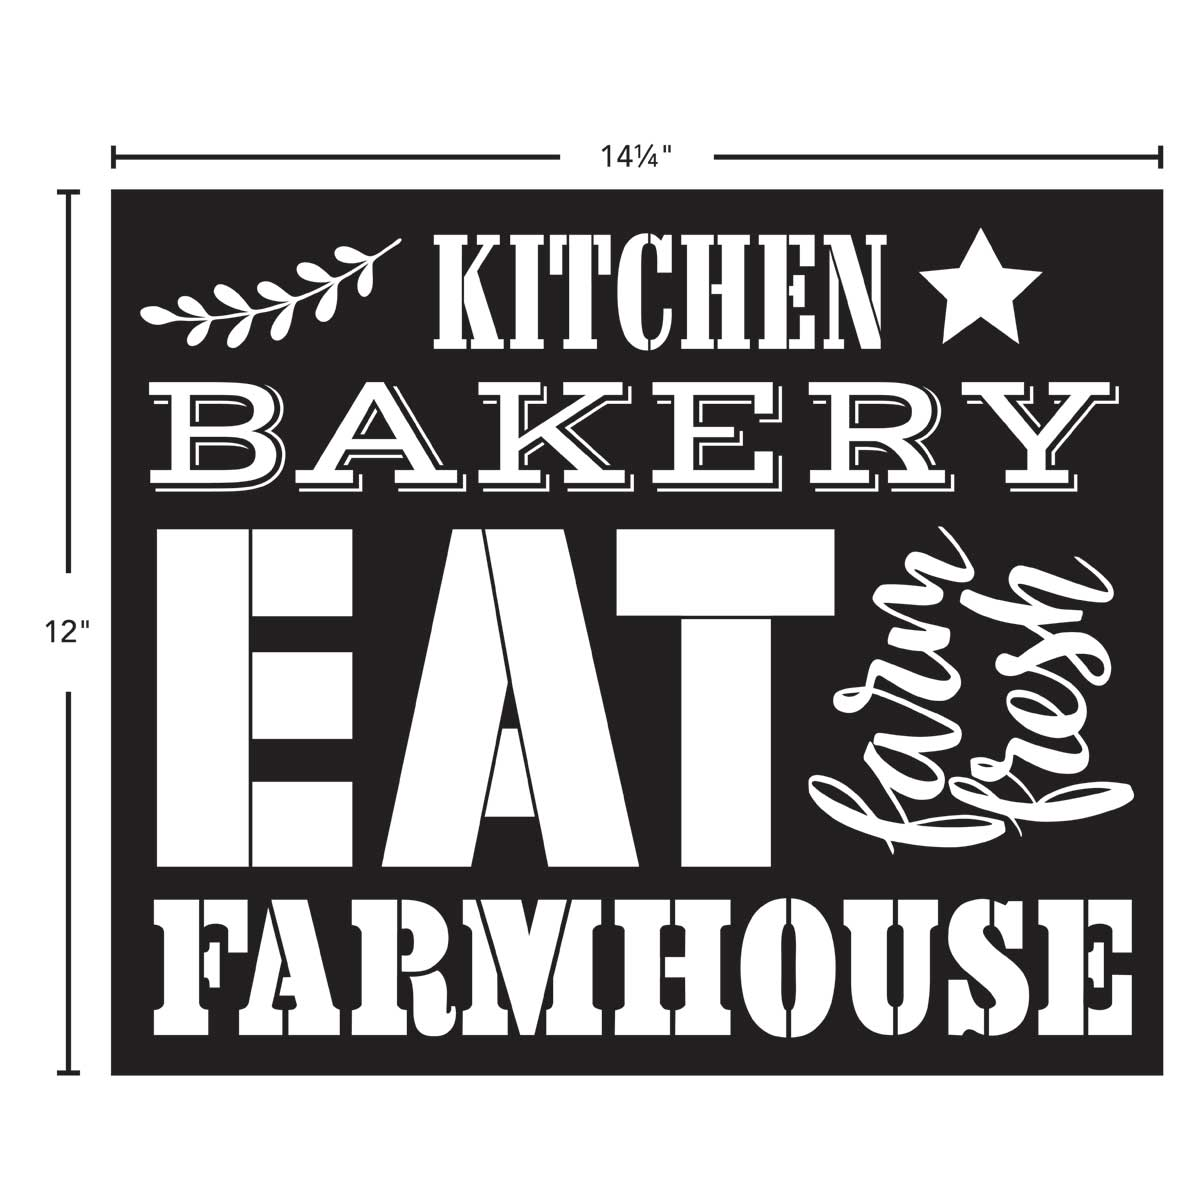 FolkArt ® Painting Stencils - Sign Making - Farmhouse